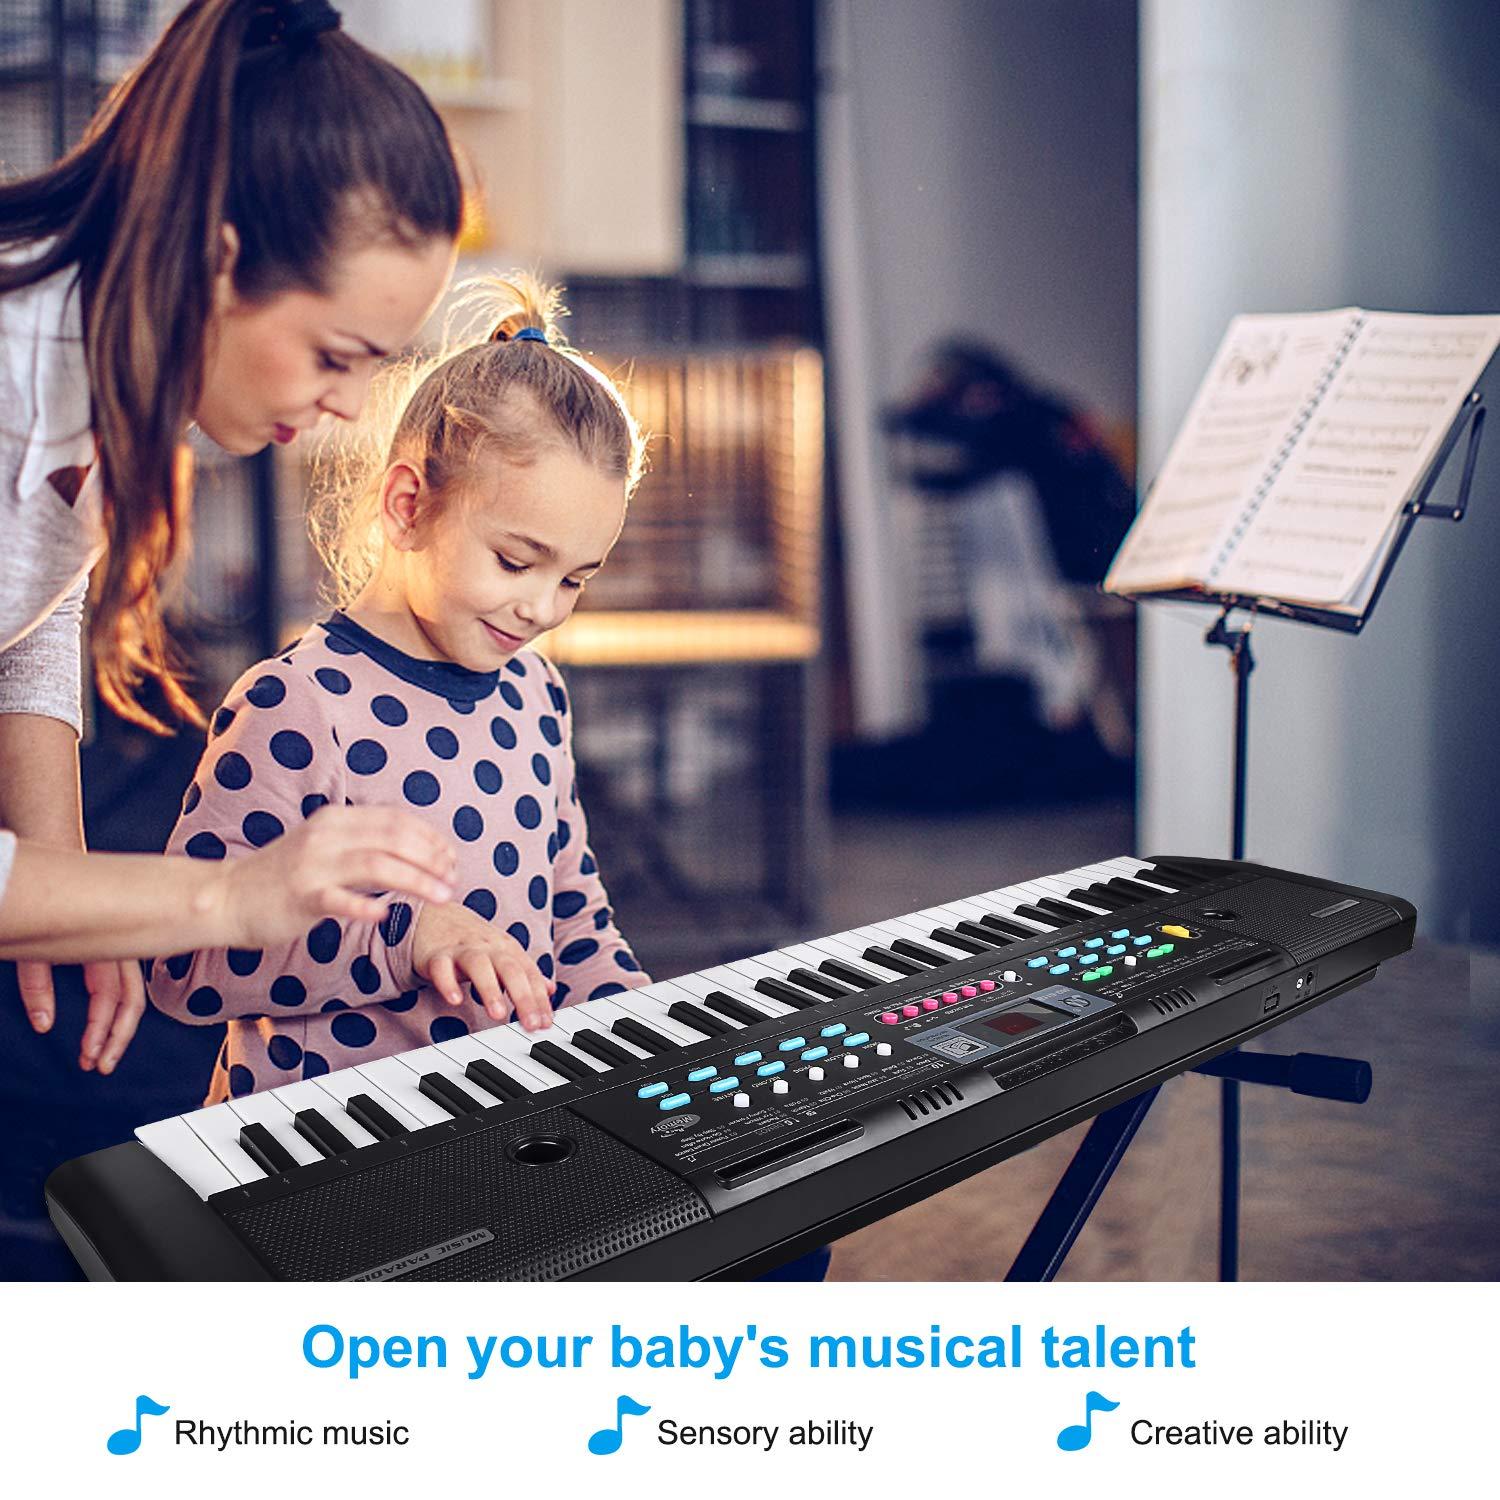 ZJTL 61-Key Digital Electric Piano Keyboard & Music Stand & microphone- Portable Electronic Keyboard (Kids & Adults) MQ-6112 by ZJTL (Image #7)